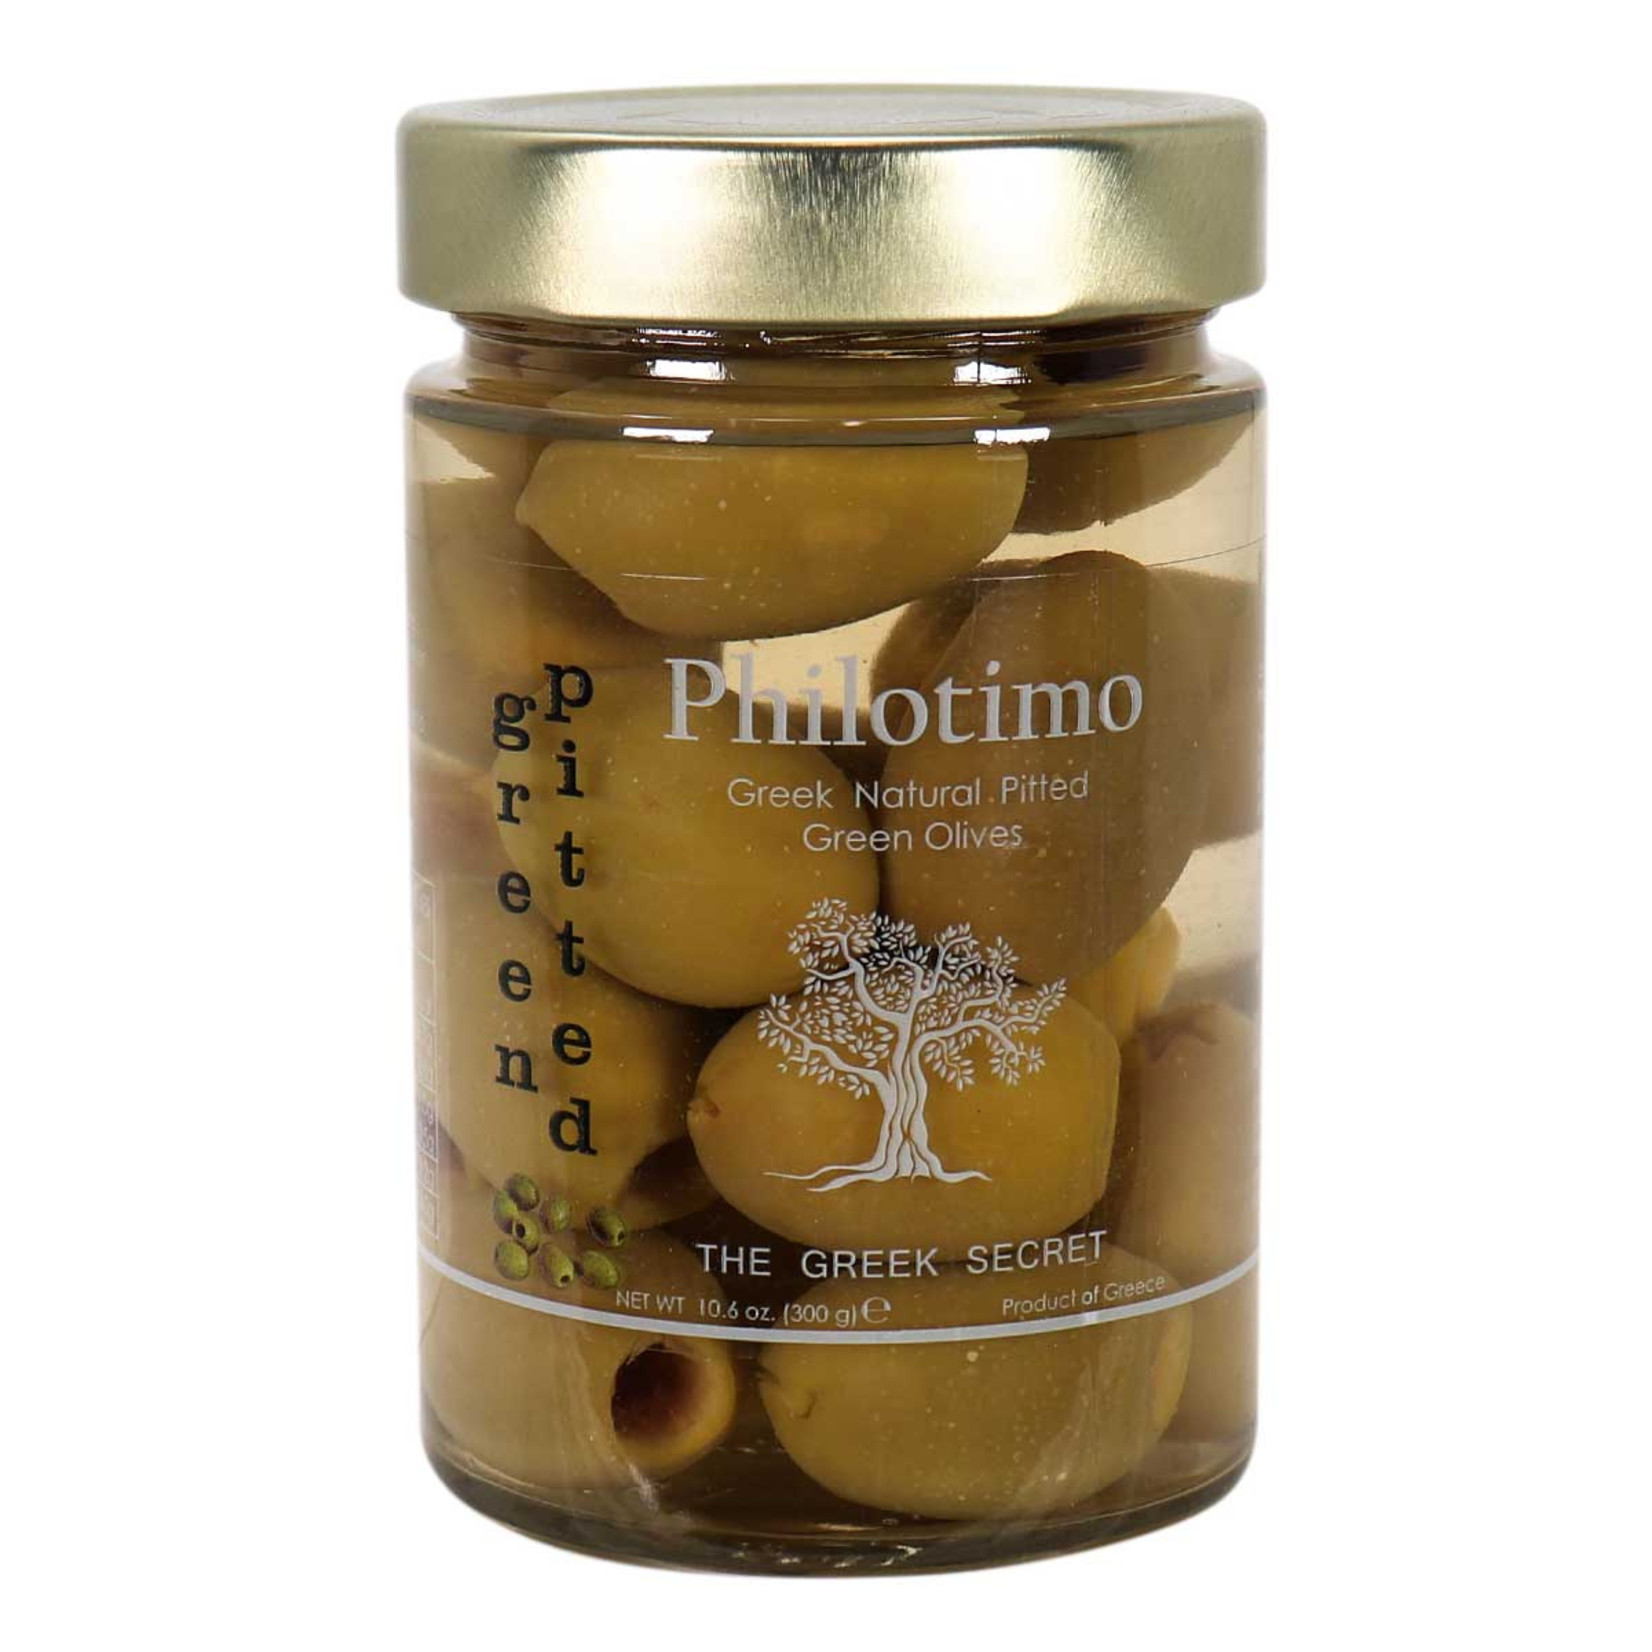 Philotimo Green Pitted Olives